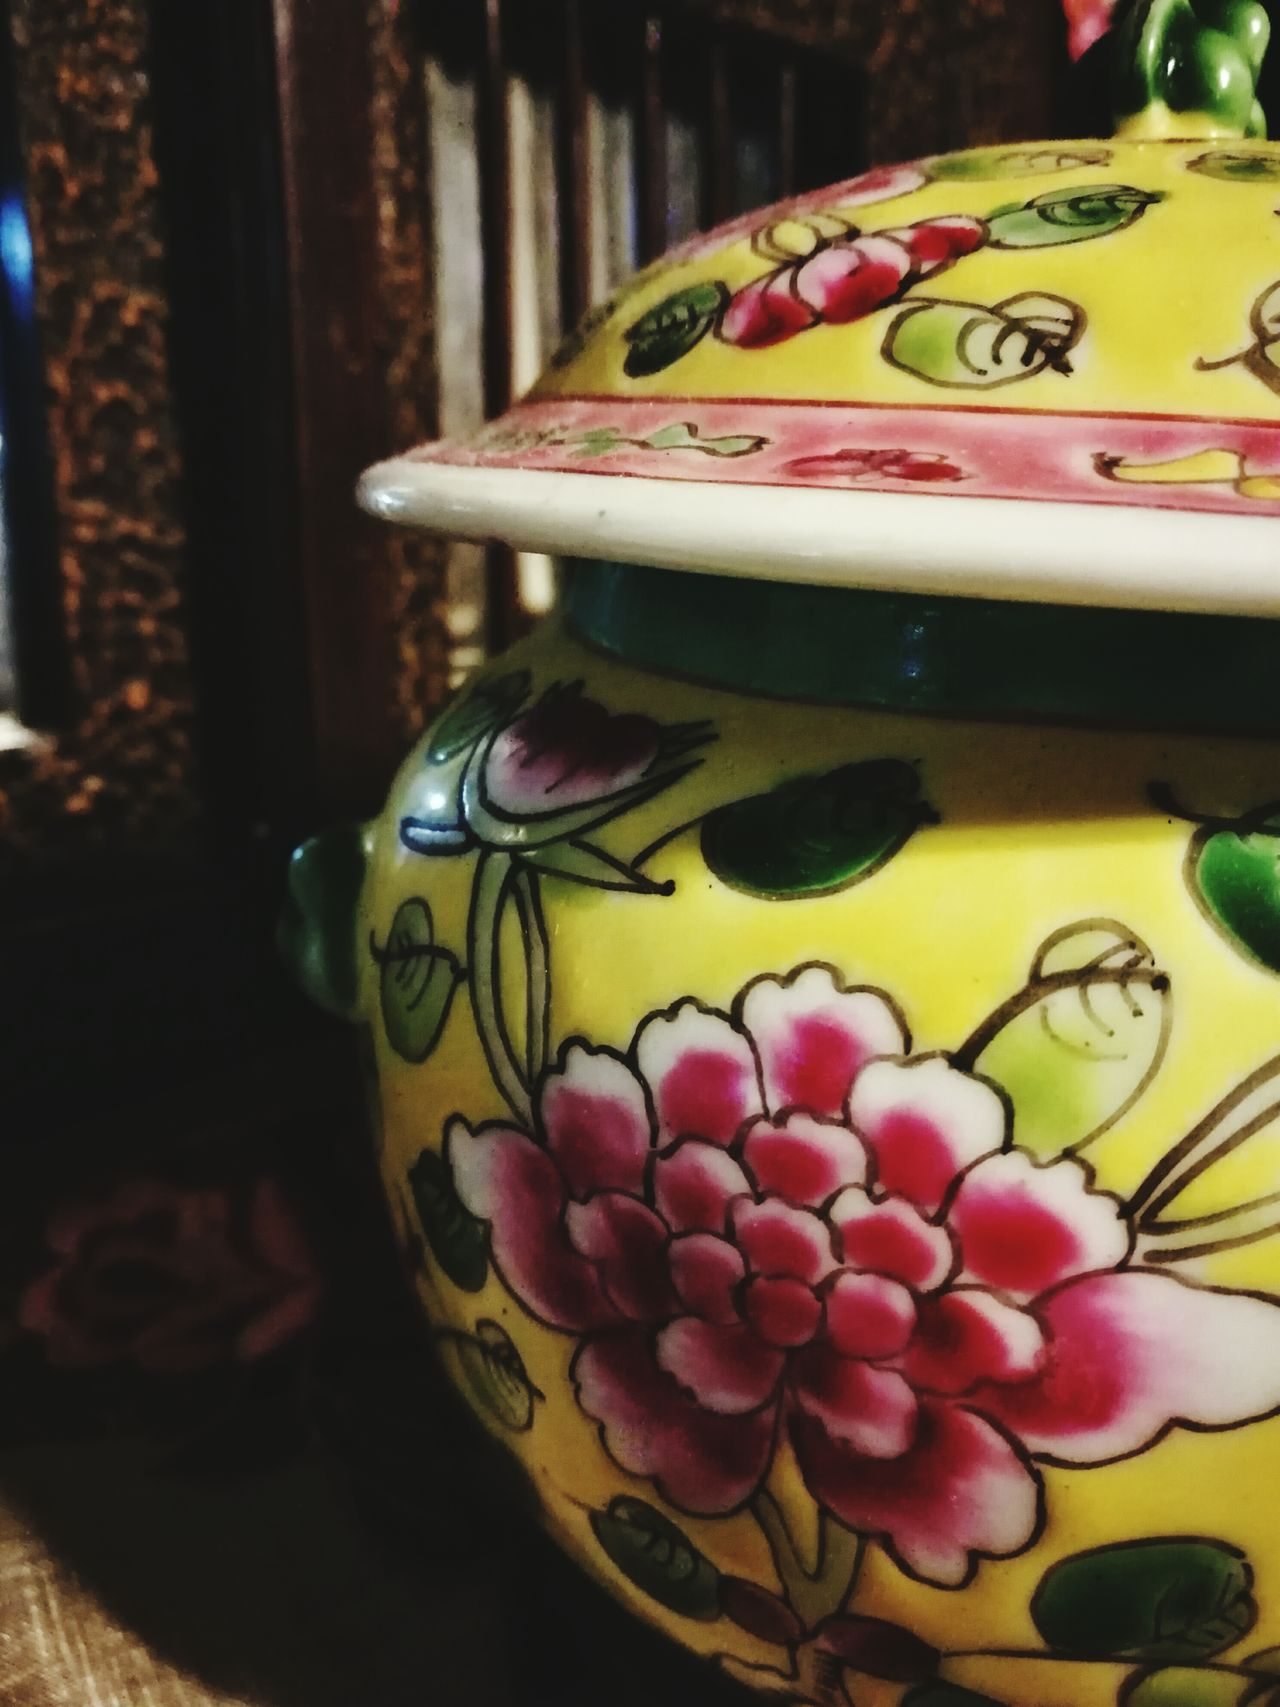 Close-up No People Indoors  Multi Colored Day peranakan Kum Cheng Nonya Peranakan Nonya Peranakan Cultures Still Life StillLifePhotography Straitsborn